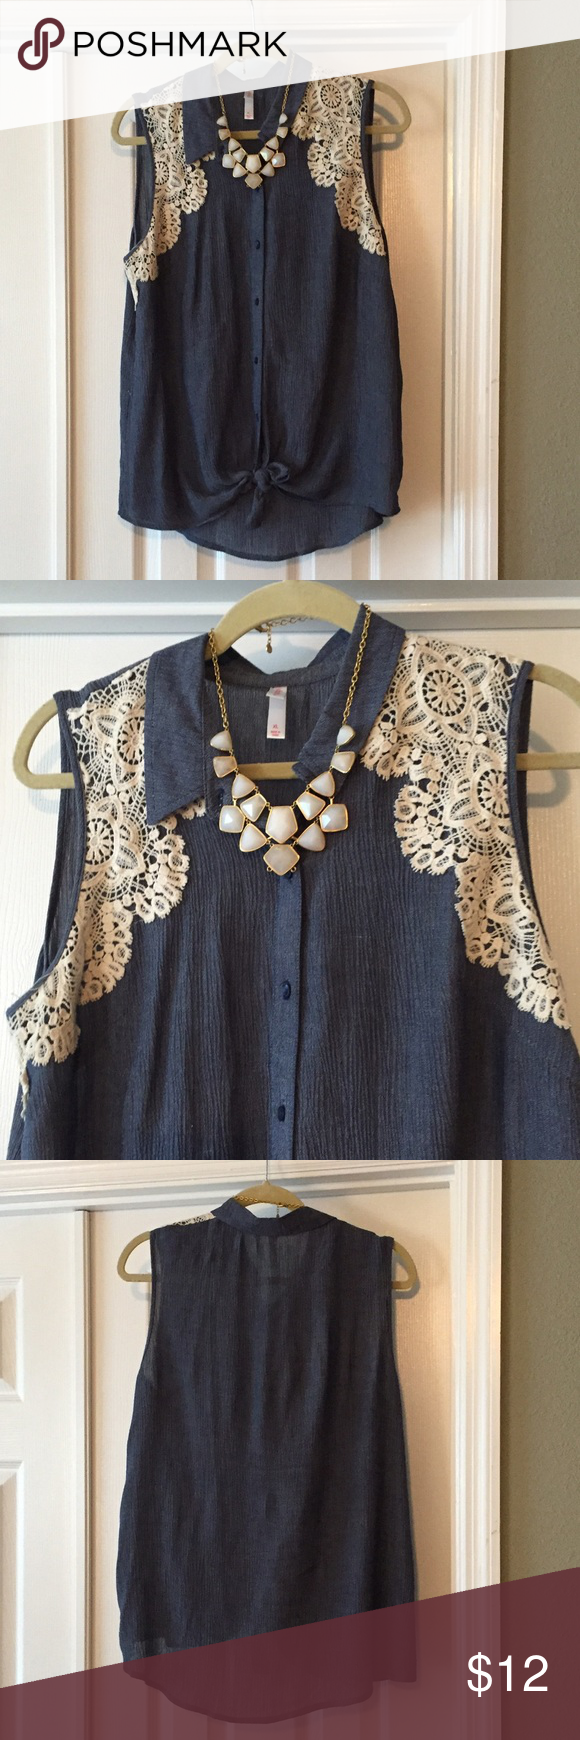 Target chambray top Super cute chambray top with cream color crochet detail and tie bottom. Xhilaration Tops Blouses